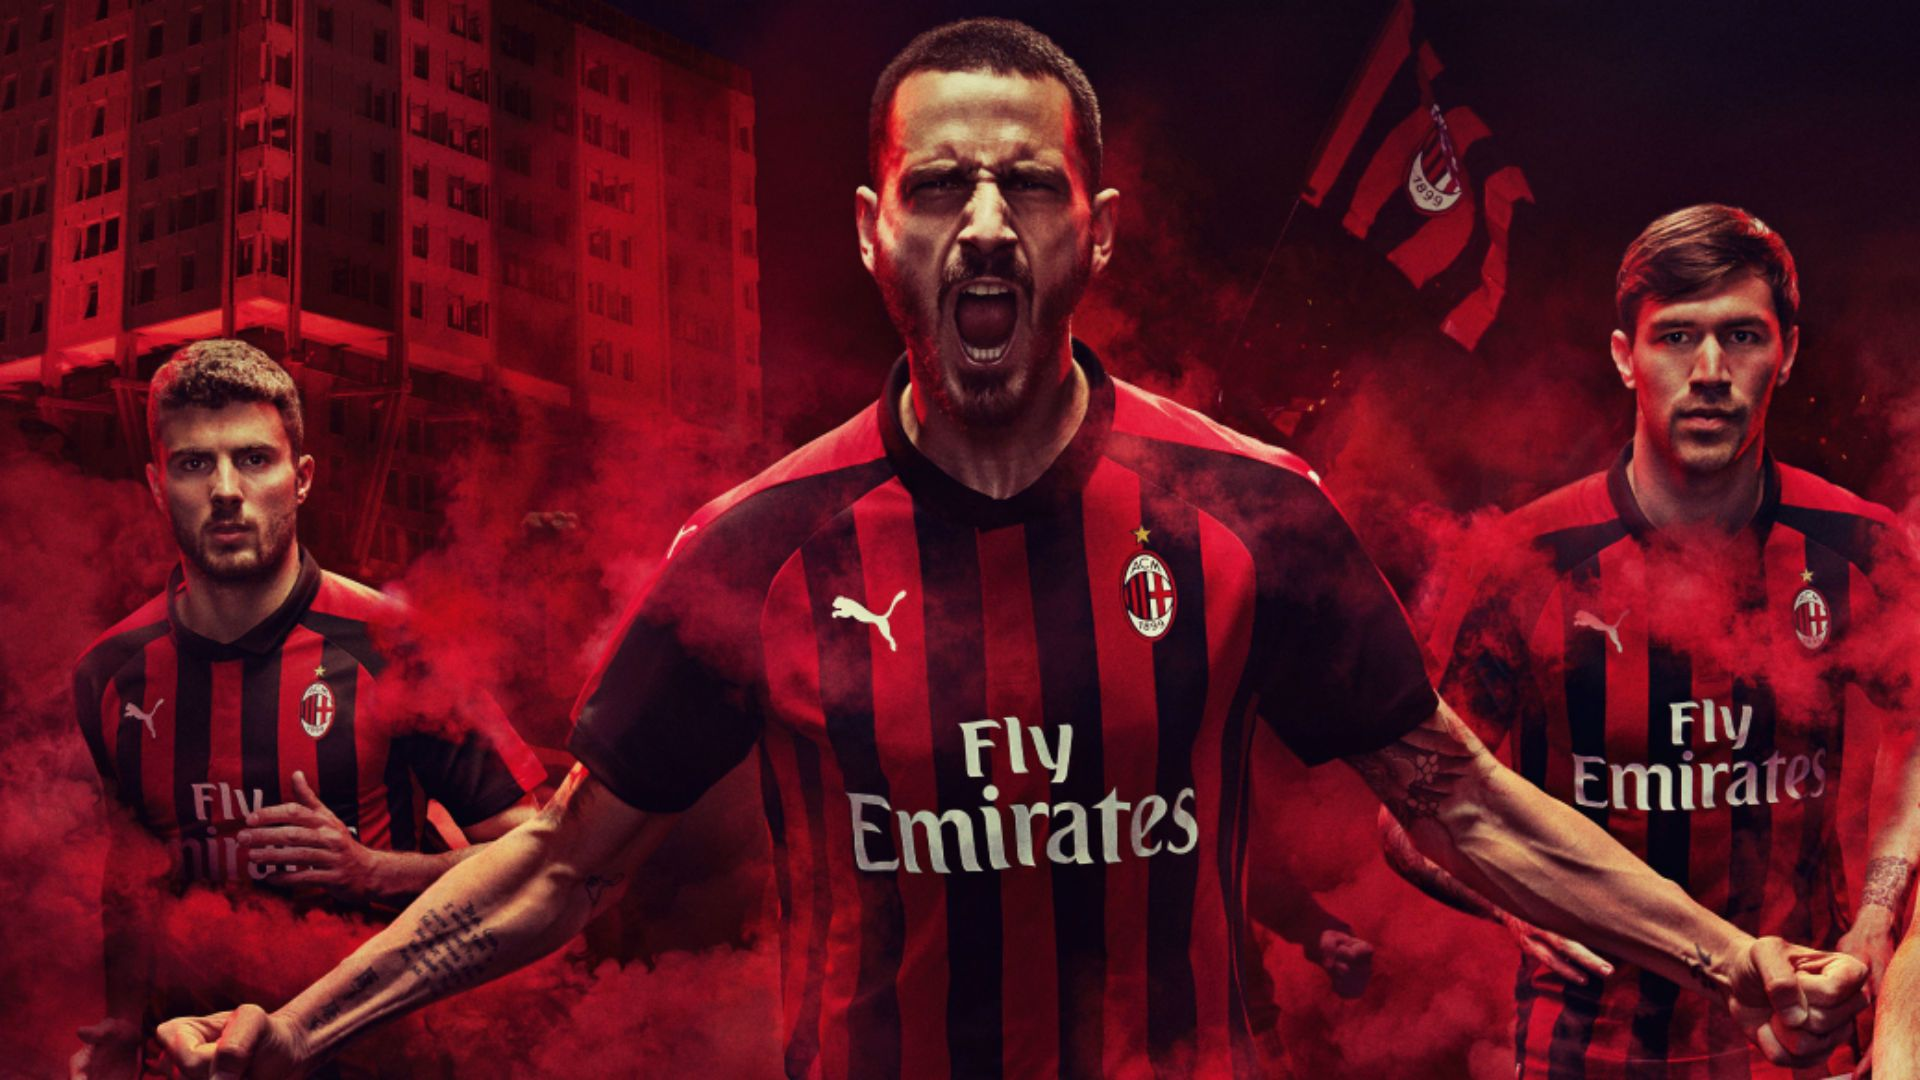 Ac Milan Wallpaper Posted By Ethan Peltier